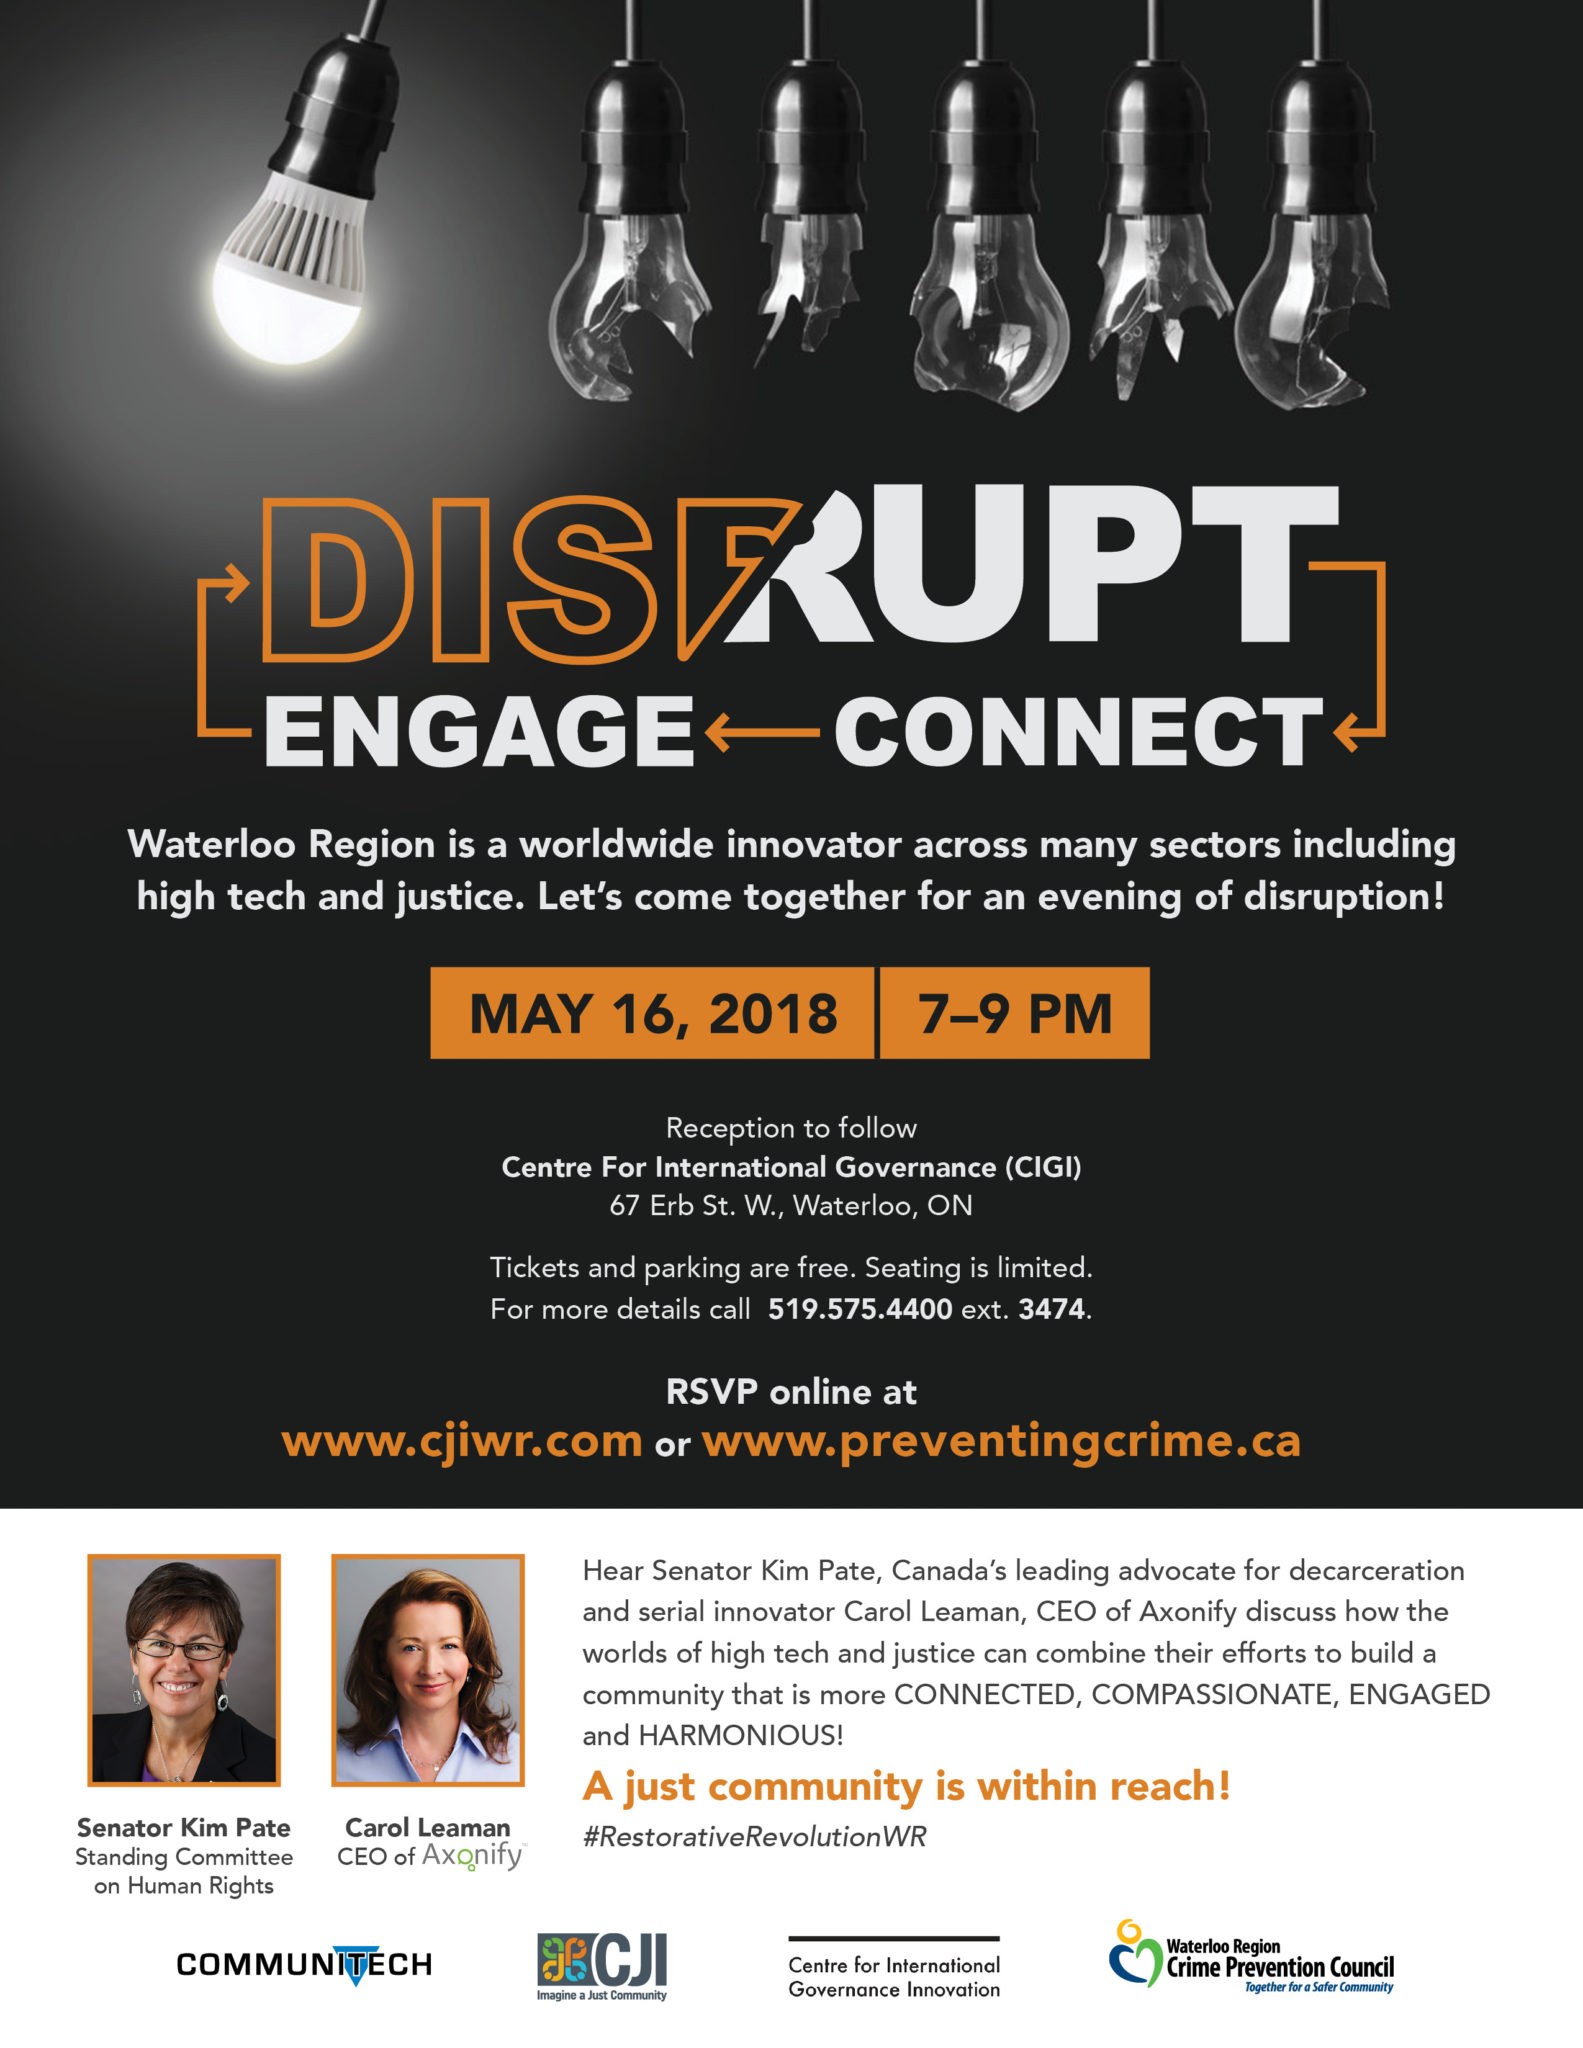 Disrupt-Connect-Engage: An Evening with Senator Kim Pate | Community ...